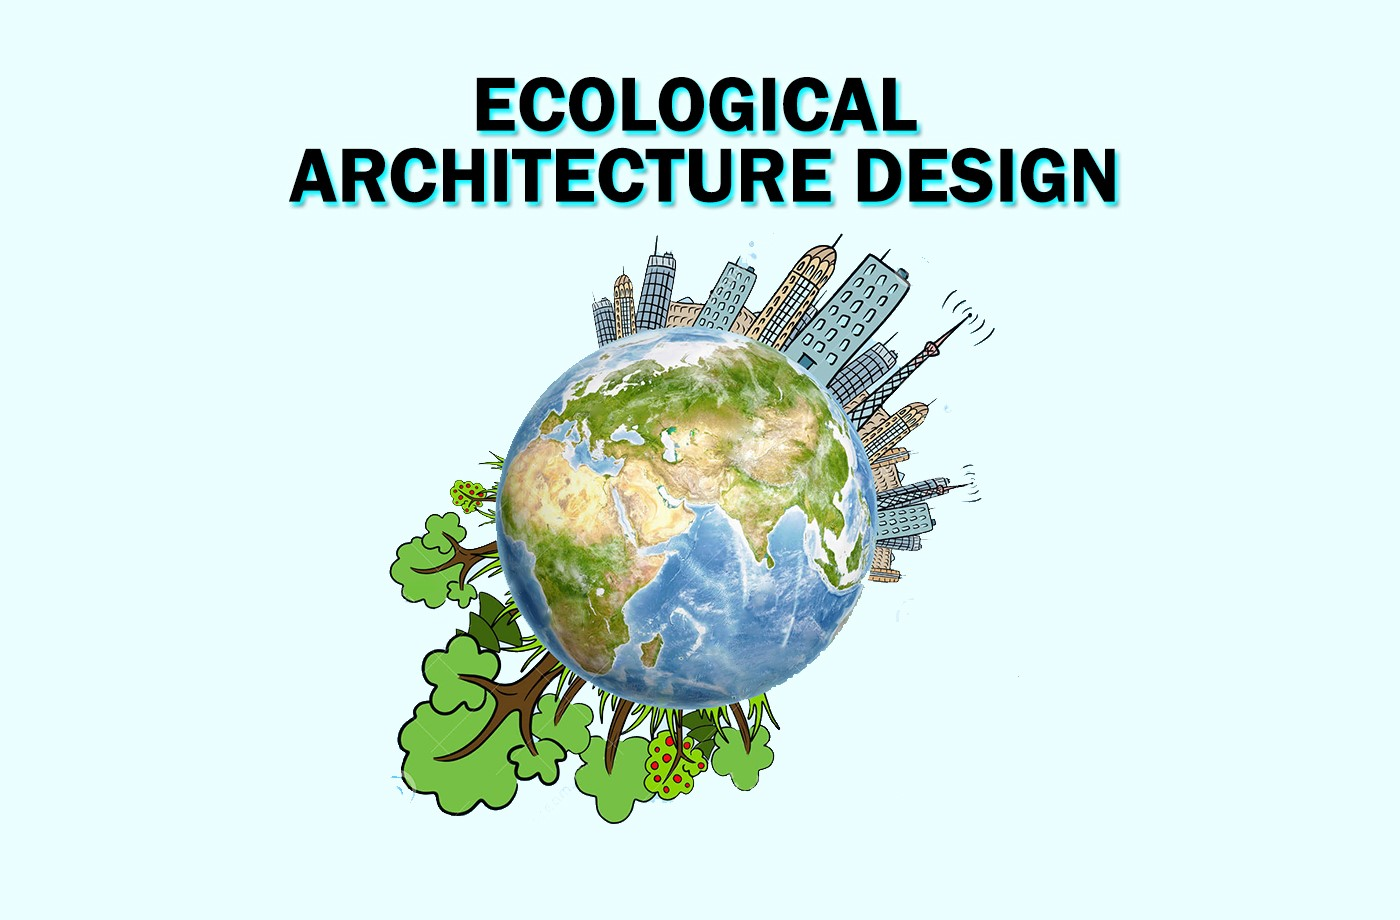 Ecological Architecture Design